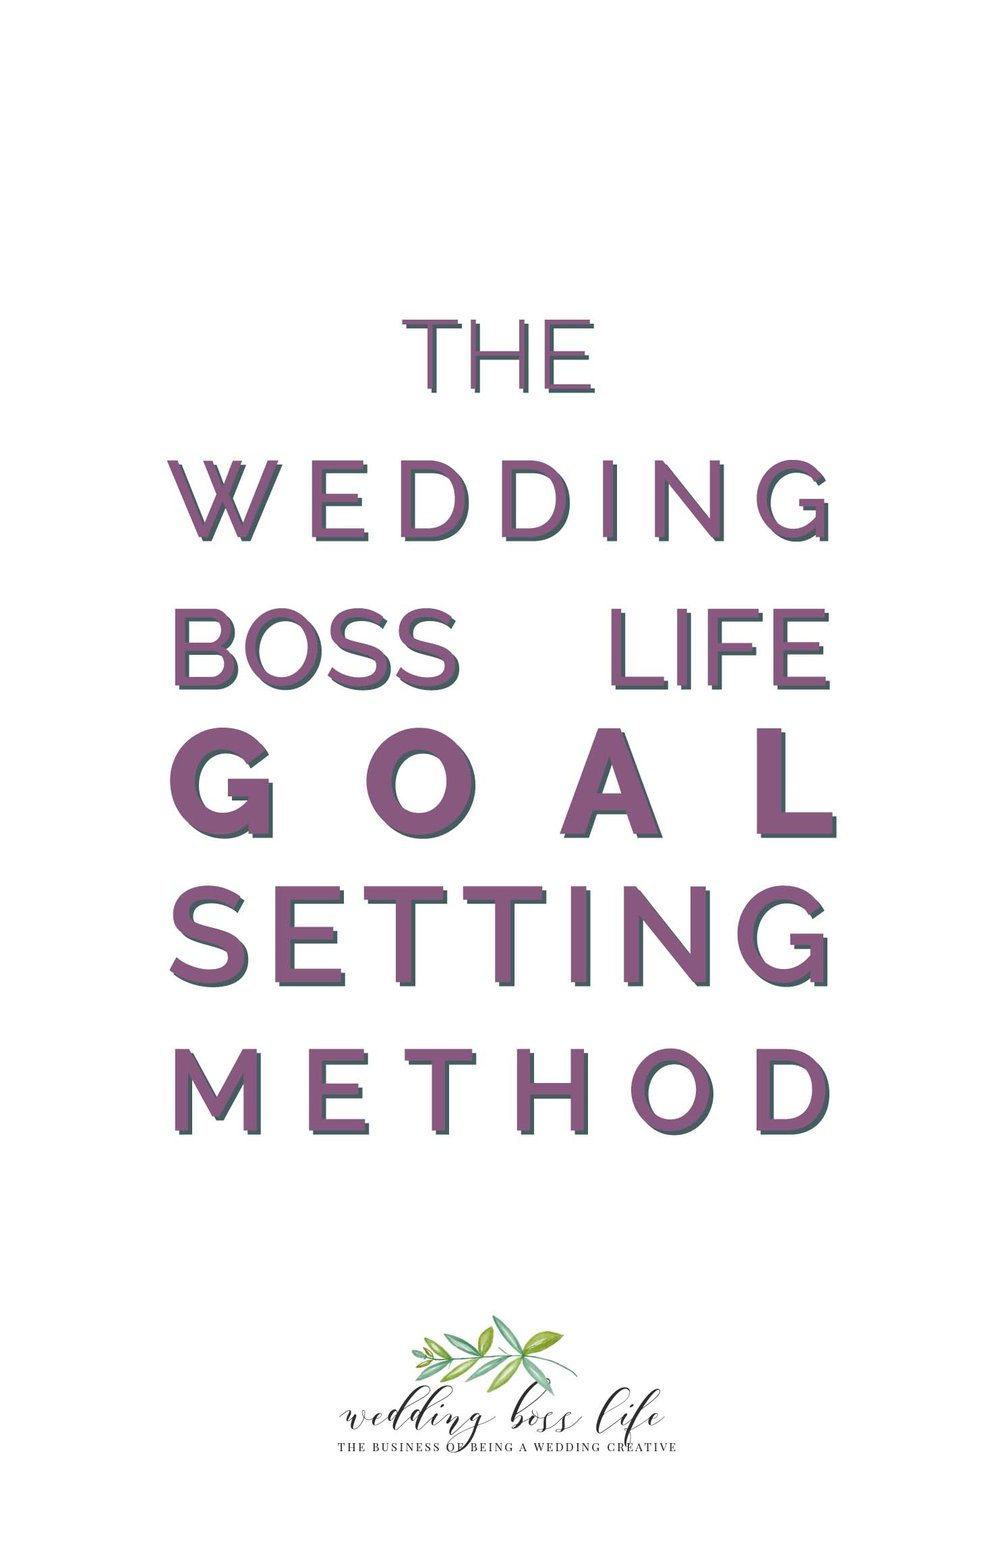 The Wedding Boss Life Goal Setting Method